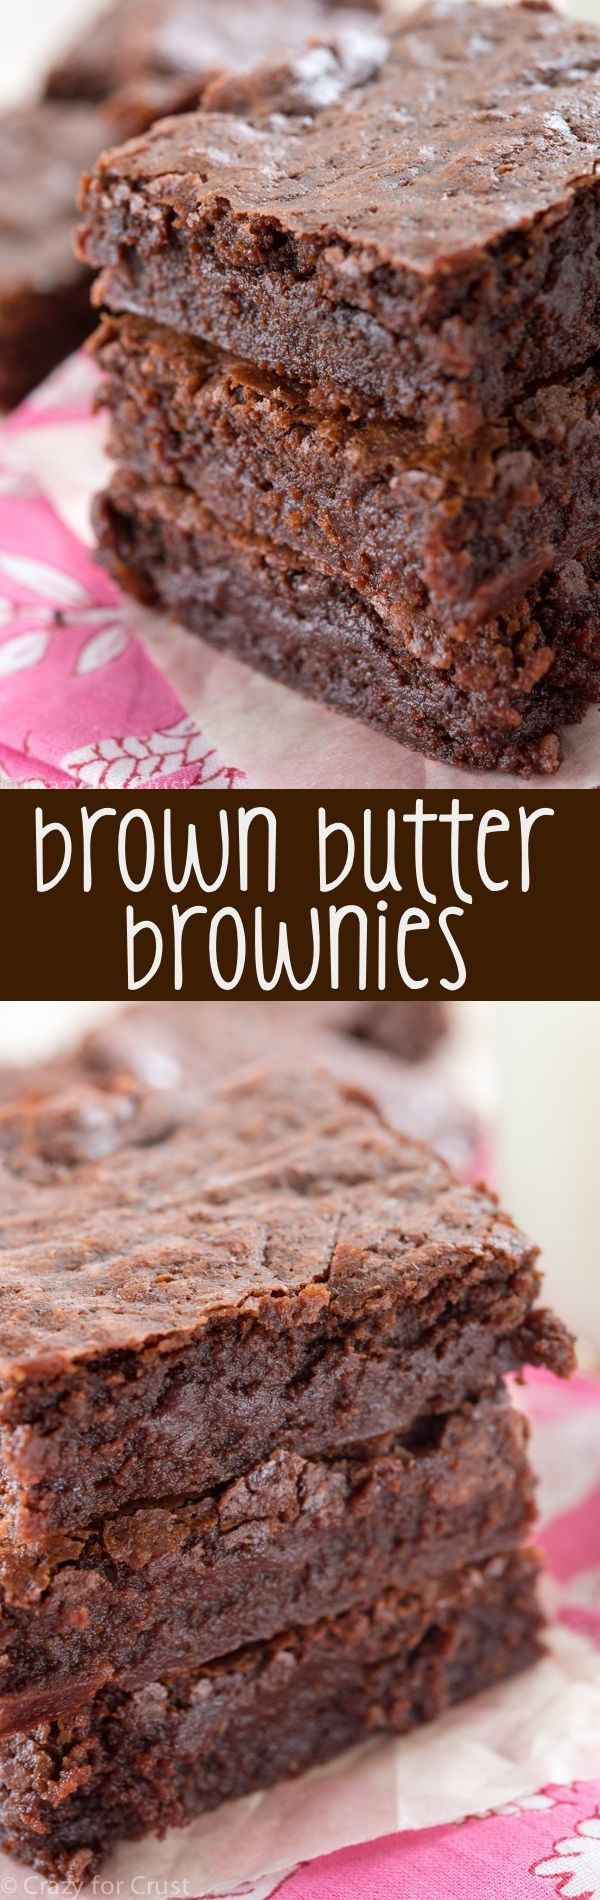 The BEST Brown Butter Brownies. This is such an easy brownie recipe! They're super fudgy and full of rich chocolate flavor!